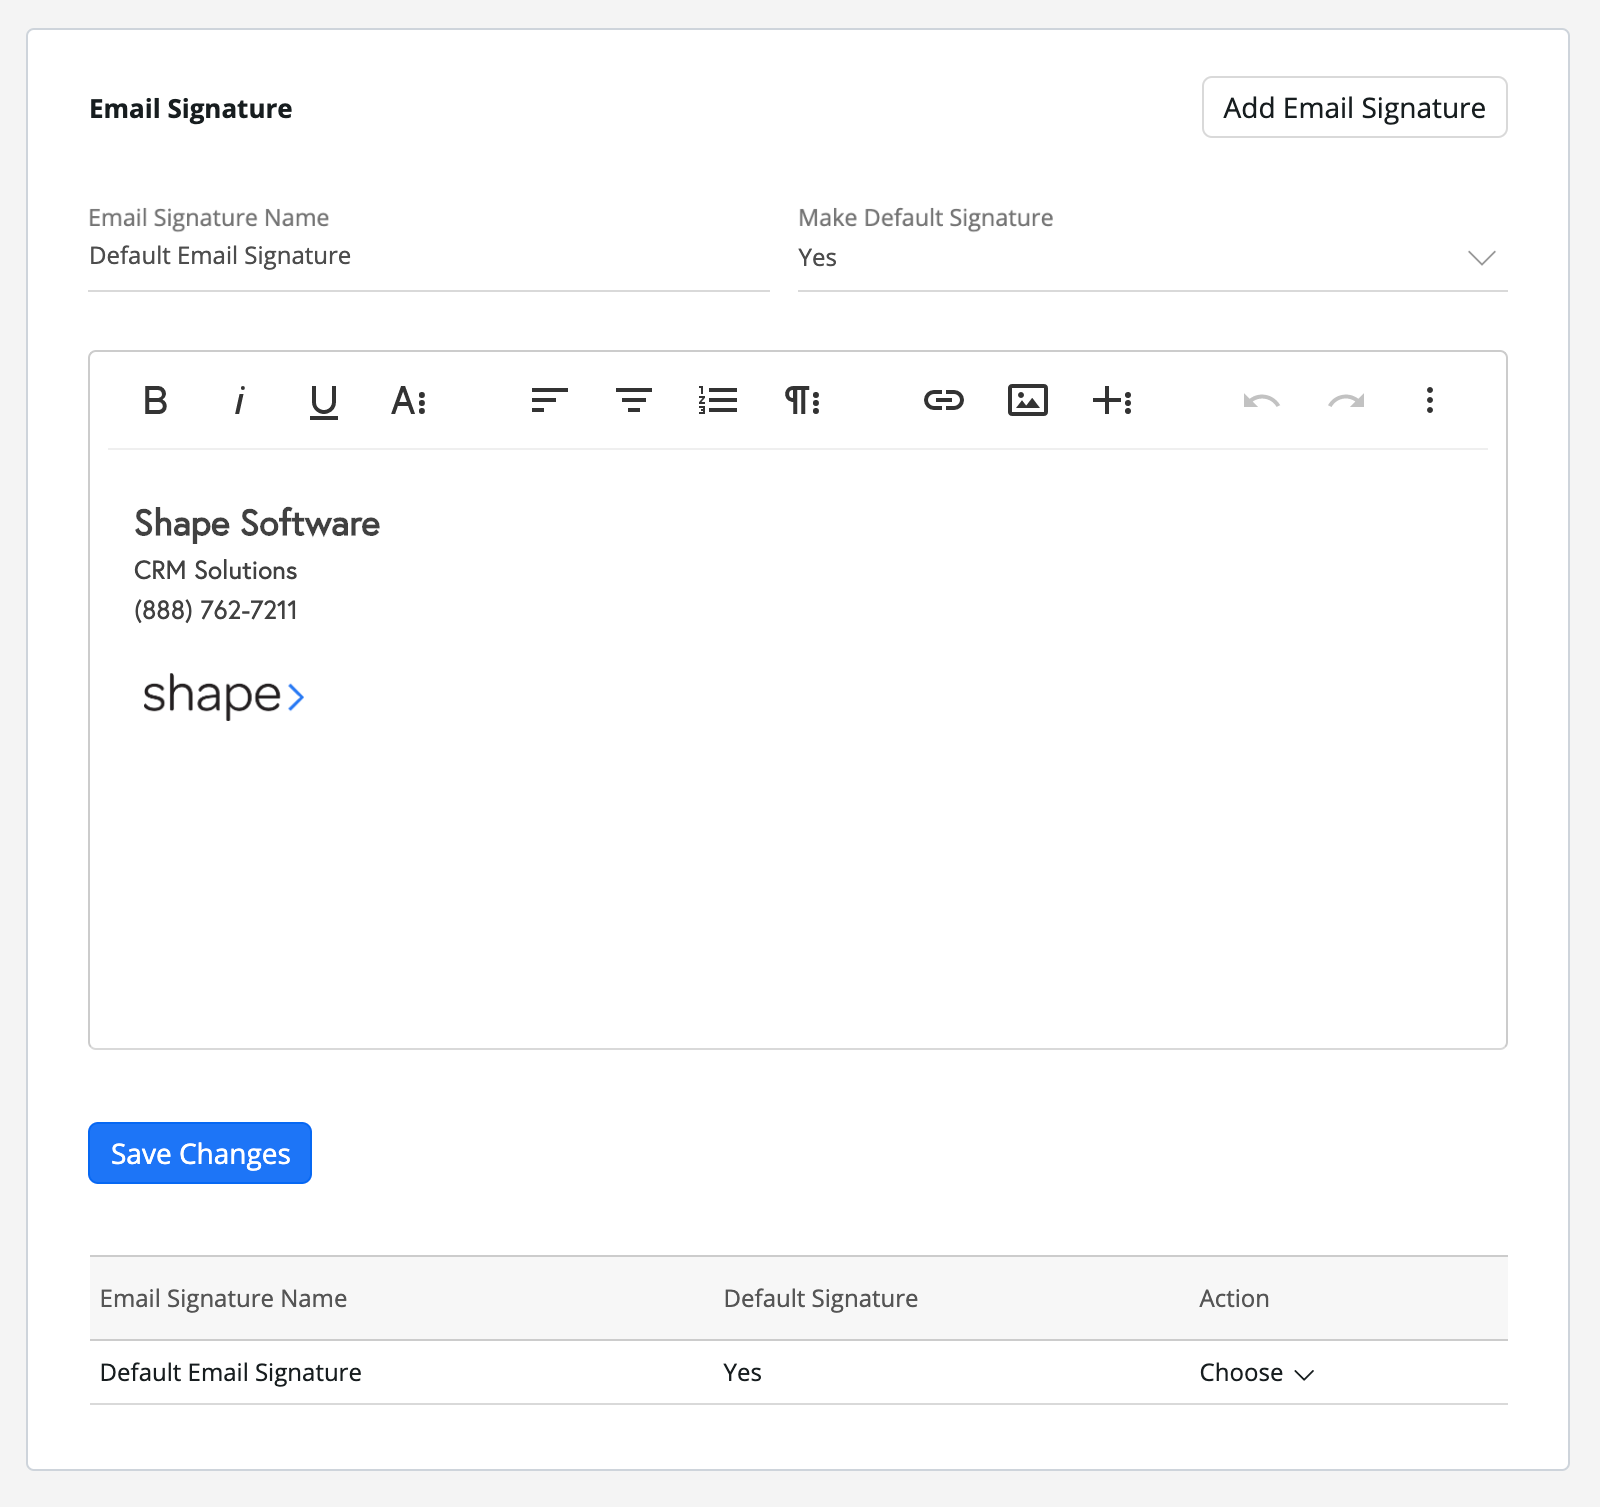 Create one or multiple email signatures. Make sure to make one the default email signature.